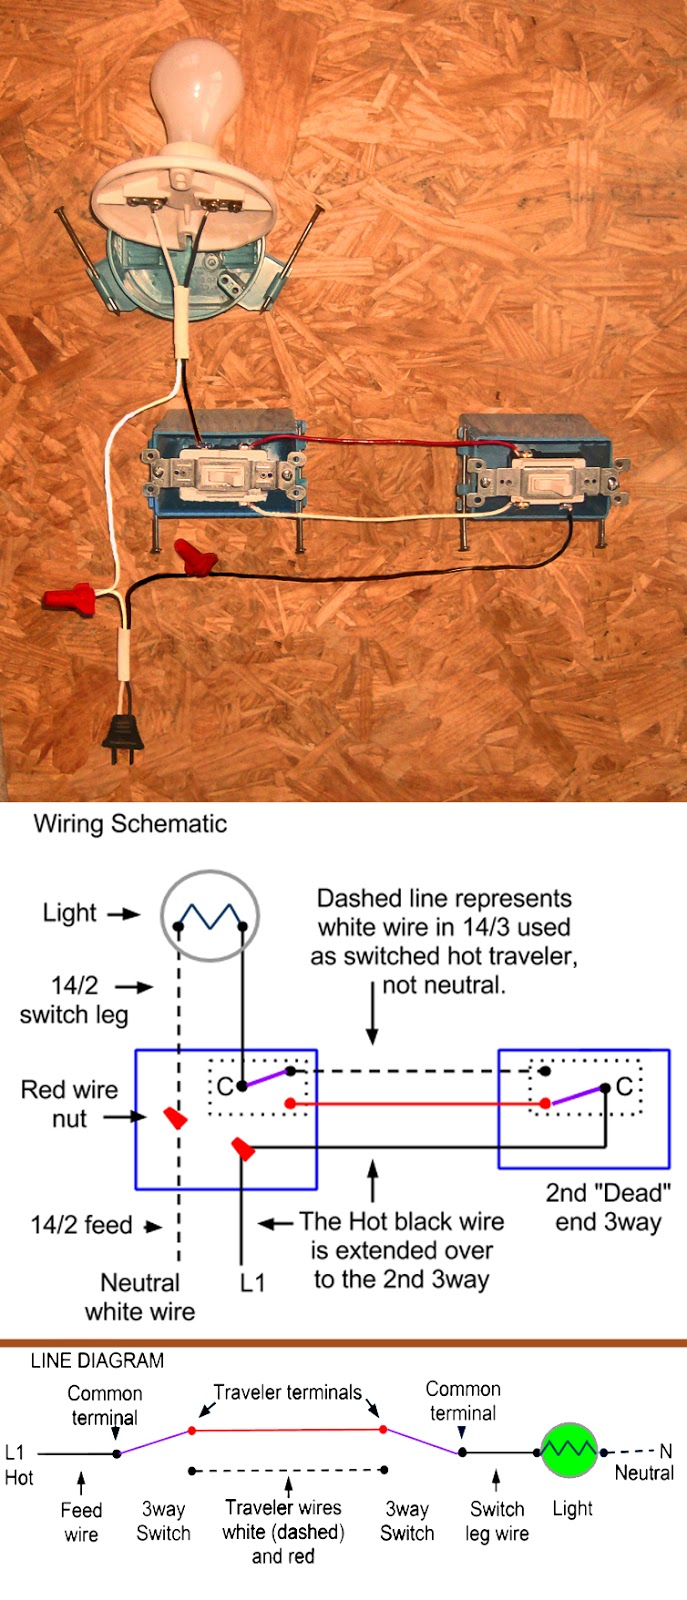 3 Way Switch Wiring Methods Dead End And Radical S3 Light With Wire Rocker Diagram We Just Learned 2 Different Of A 3way Many Electricians Are Unaware That There They Think Is Only One